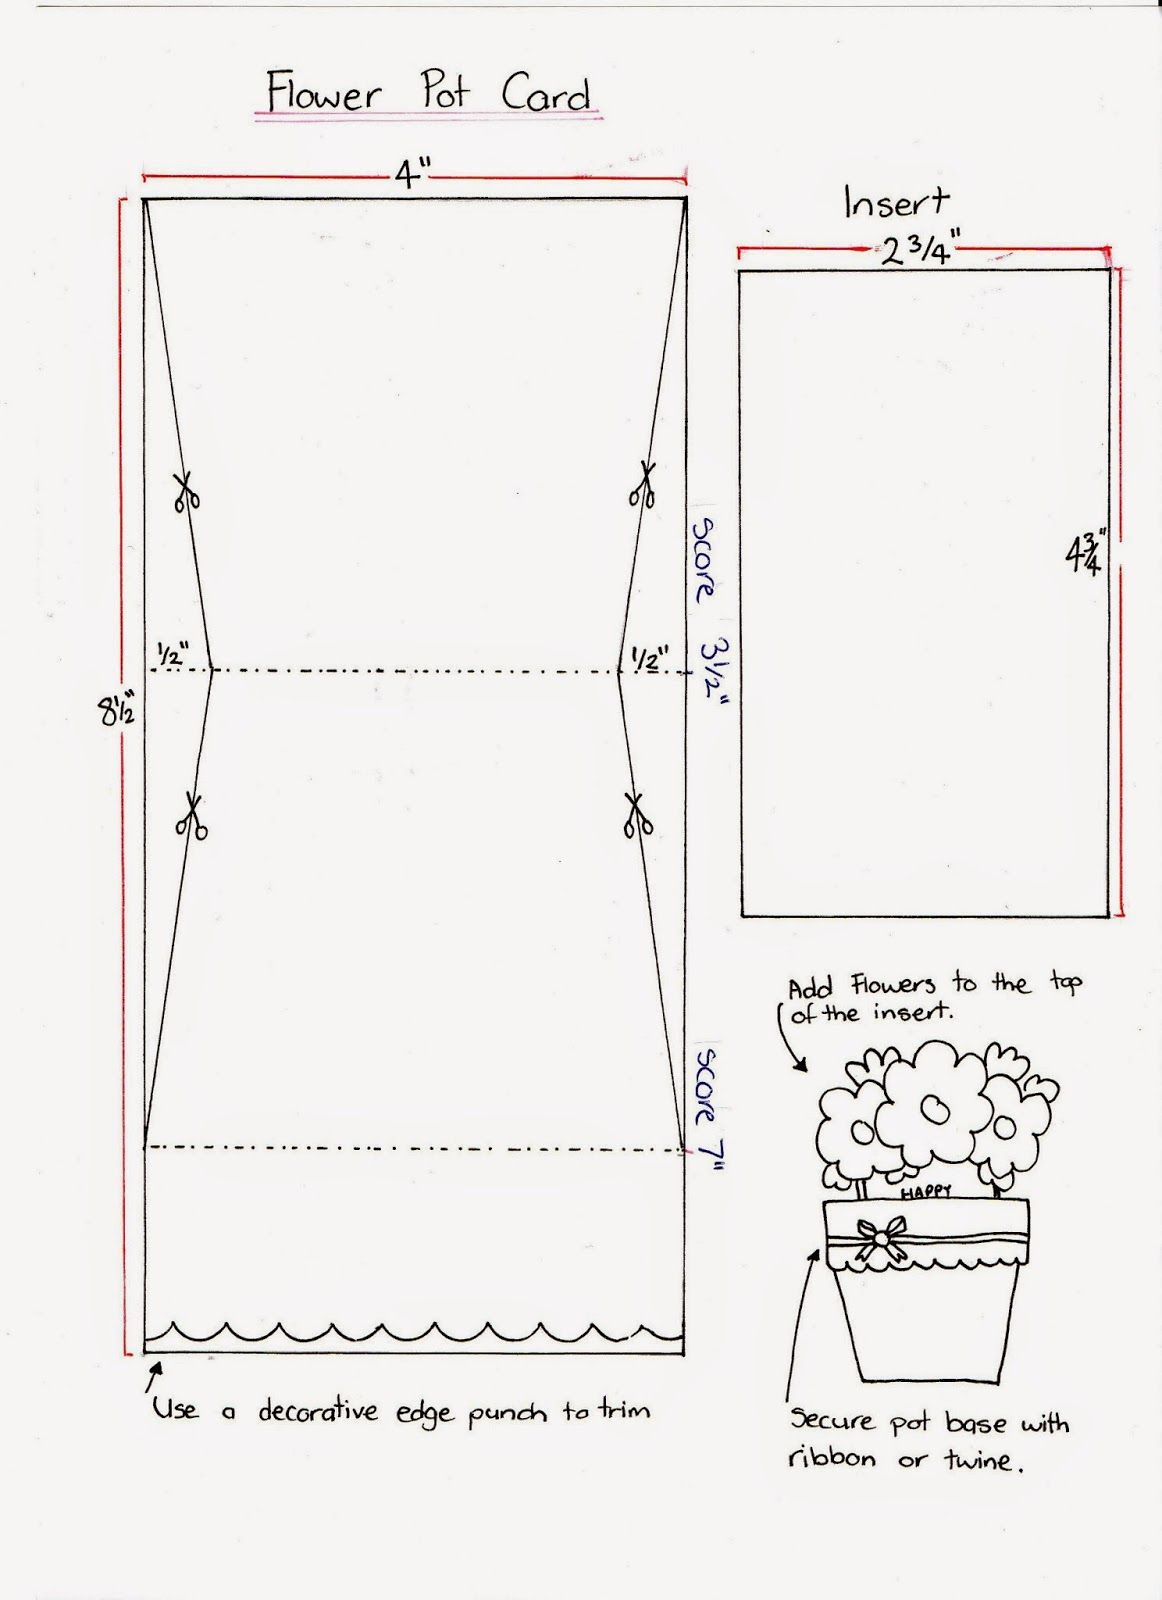 Stampin it up with belinda flower pot cards cards pinterest stampin it up with belinda flower pot cards ccuart Choice Image